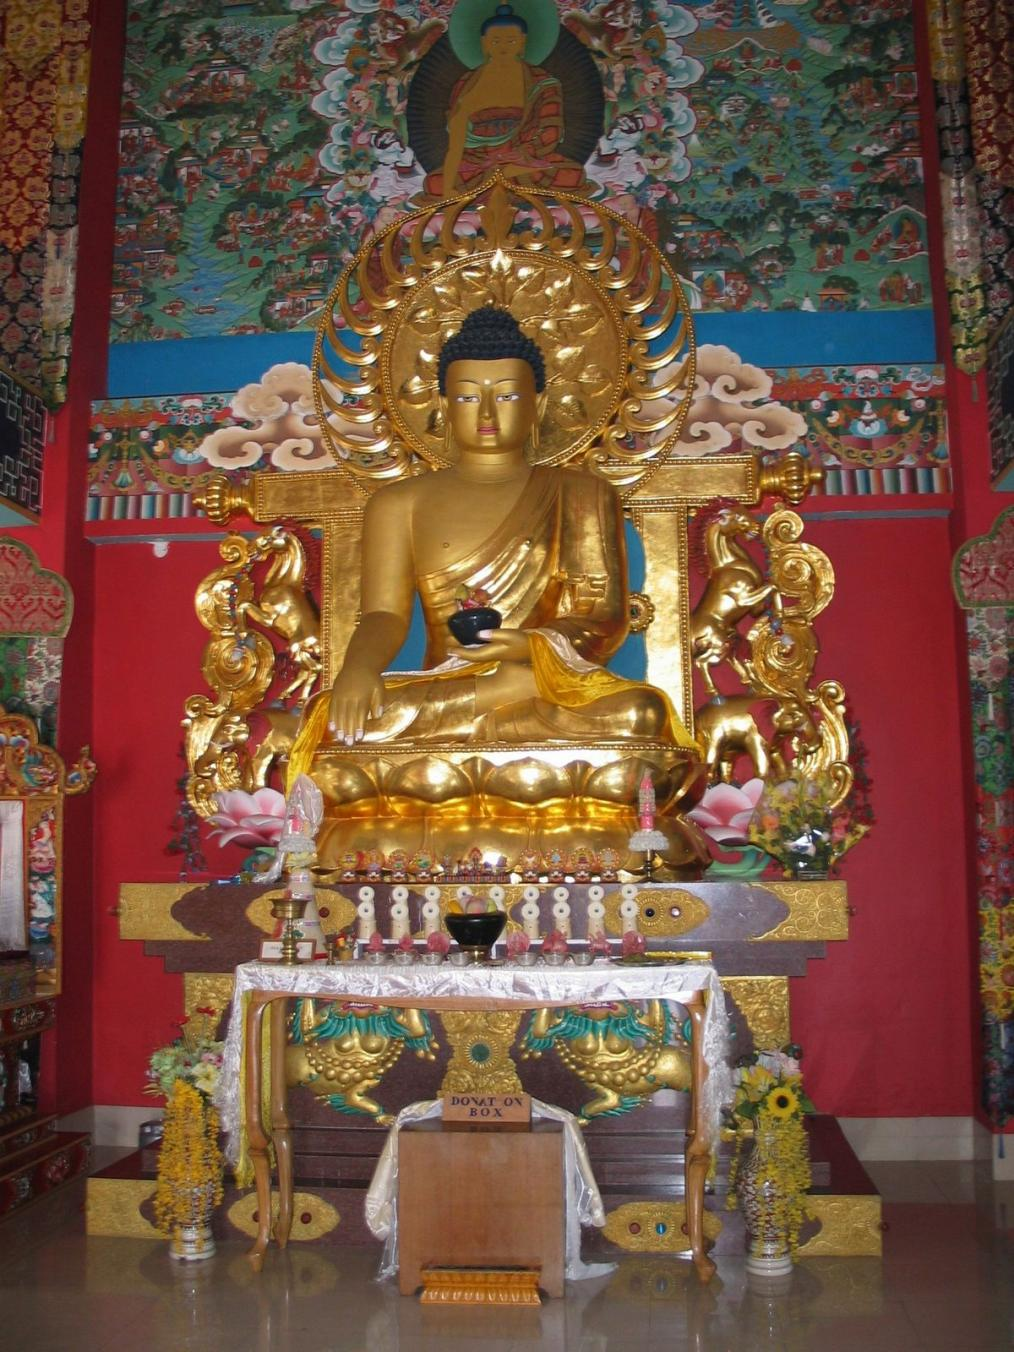 temple buddhist single men Buddhism and women allowed to enter any temple or to recite any to show that they too had the capacity like men to attain the highest position in the.